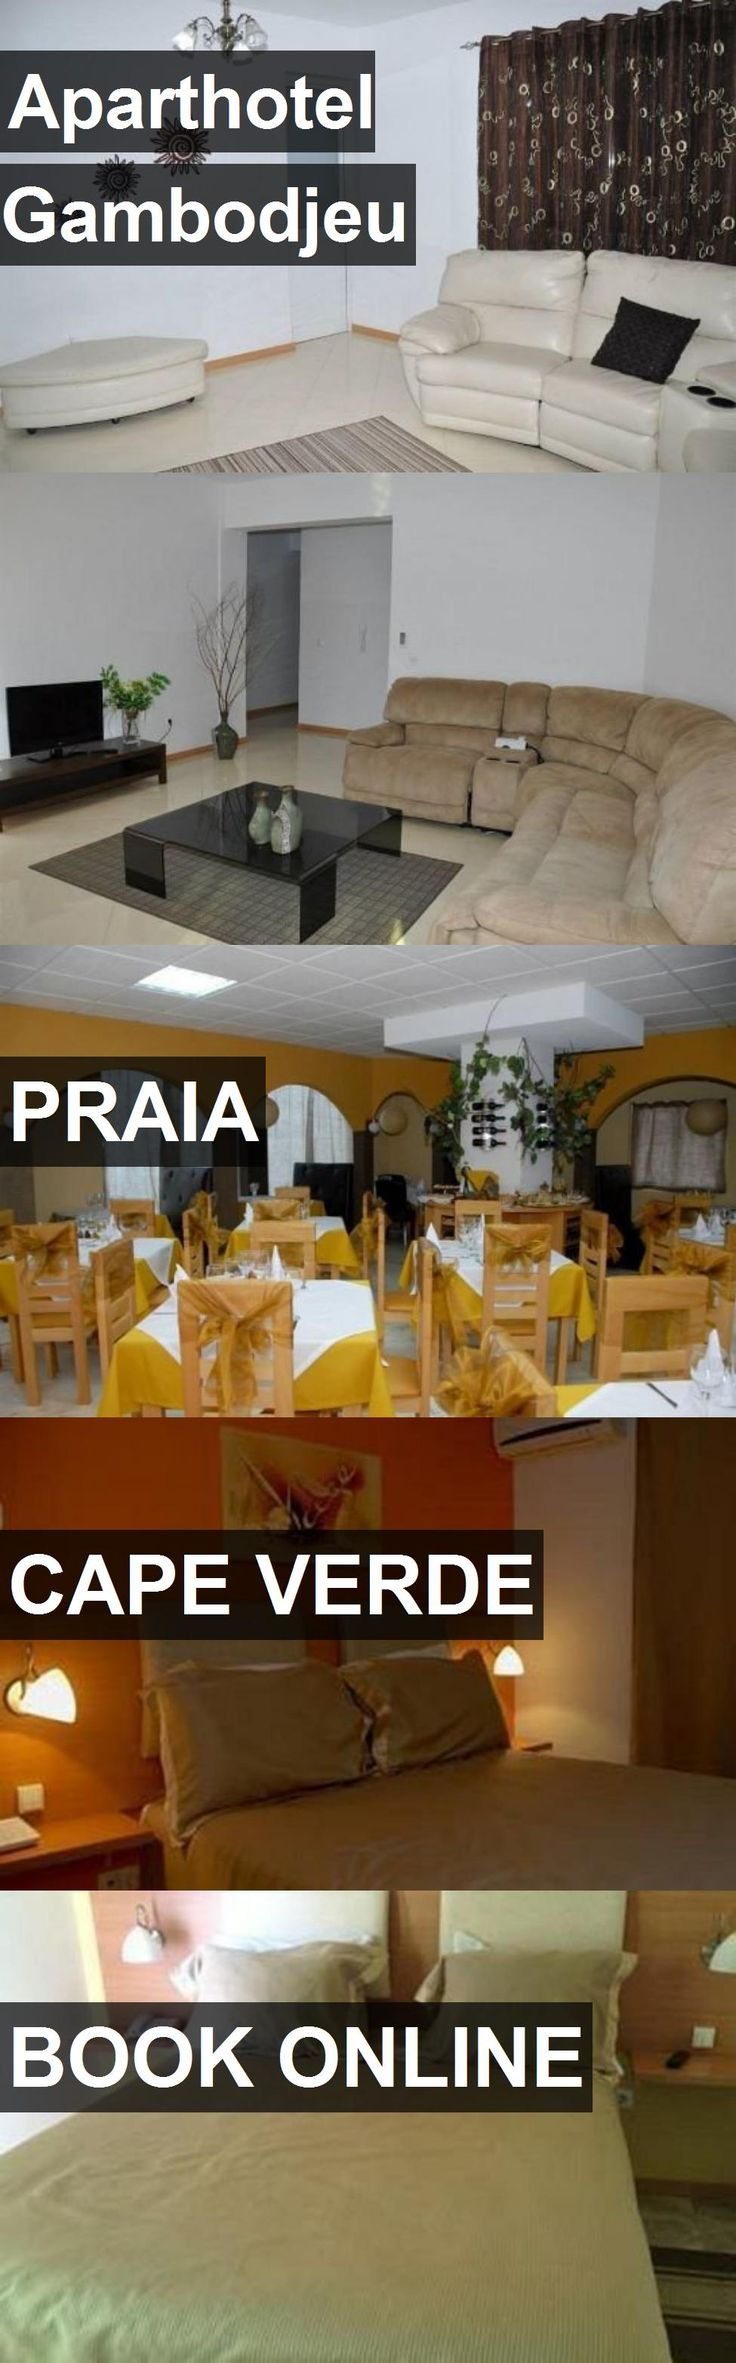 Aparthotel Gambodjeu in Praia, Cape Verde. For more information, photos, reviews and best prices please follow the link. #CapeVerde #Praia #travel #vacation #hotel